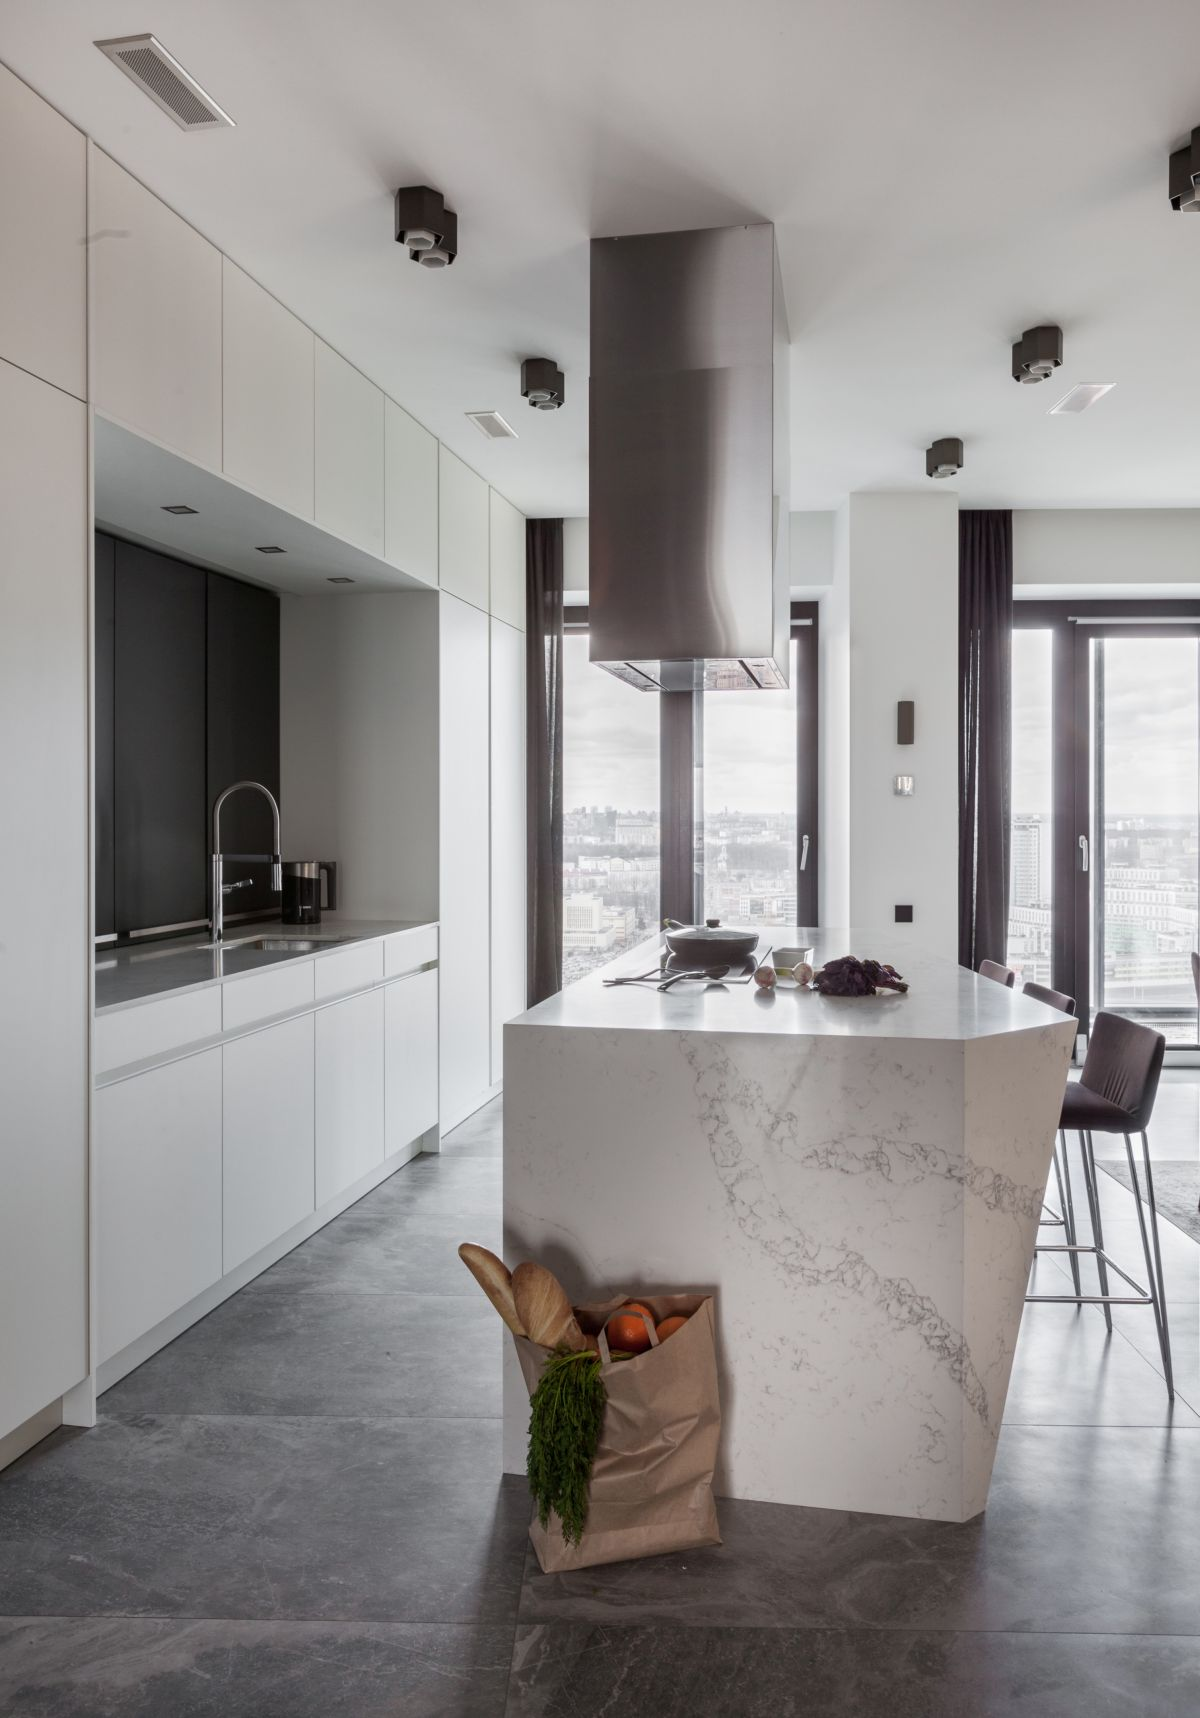 1572340907 881 posh apartment in minsk gets a complete remodel - Posh Apartment in Minsk Gets A Complete Remodel